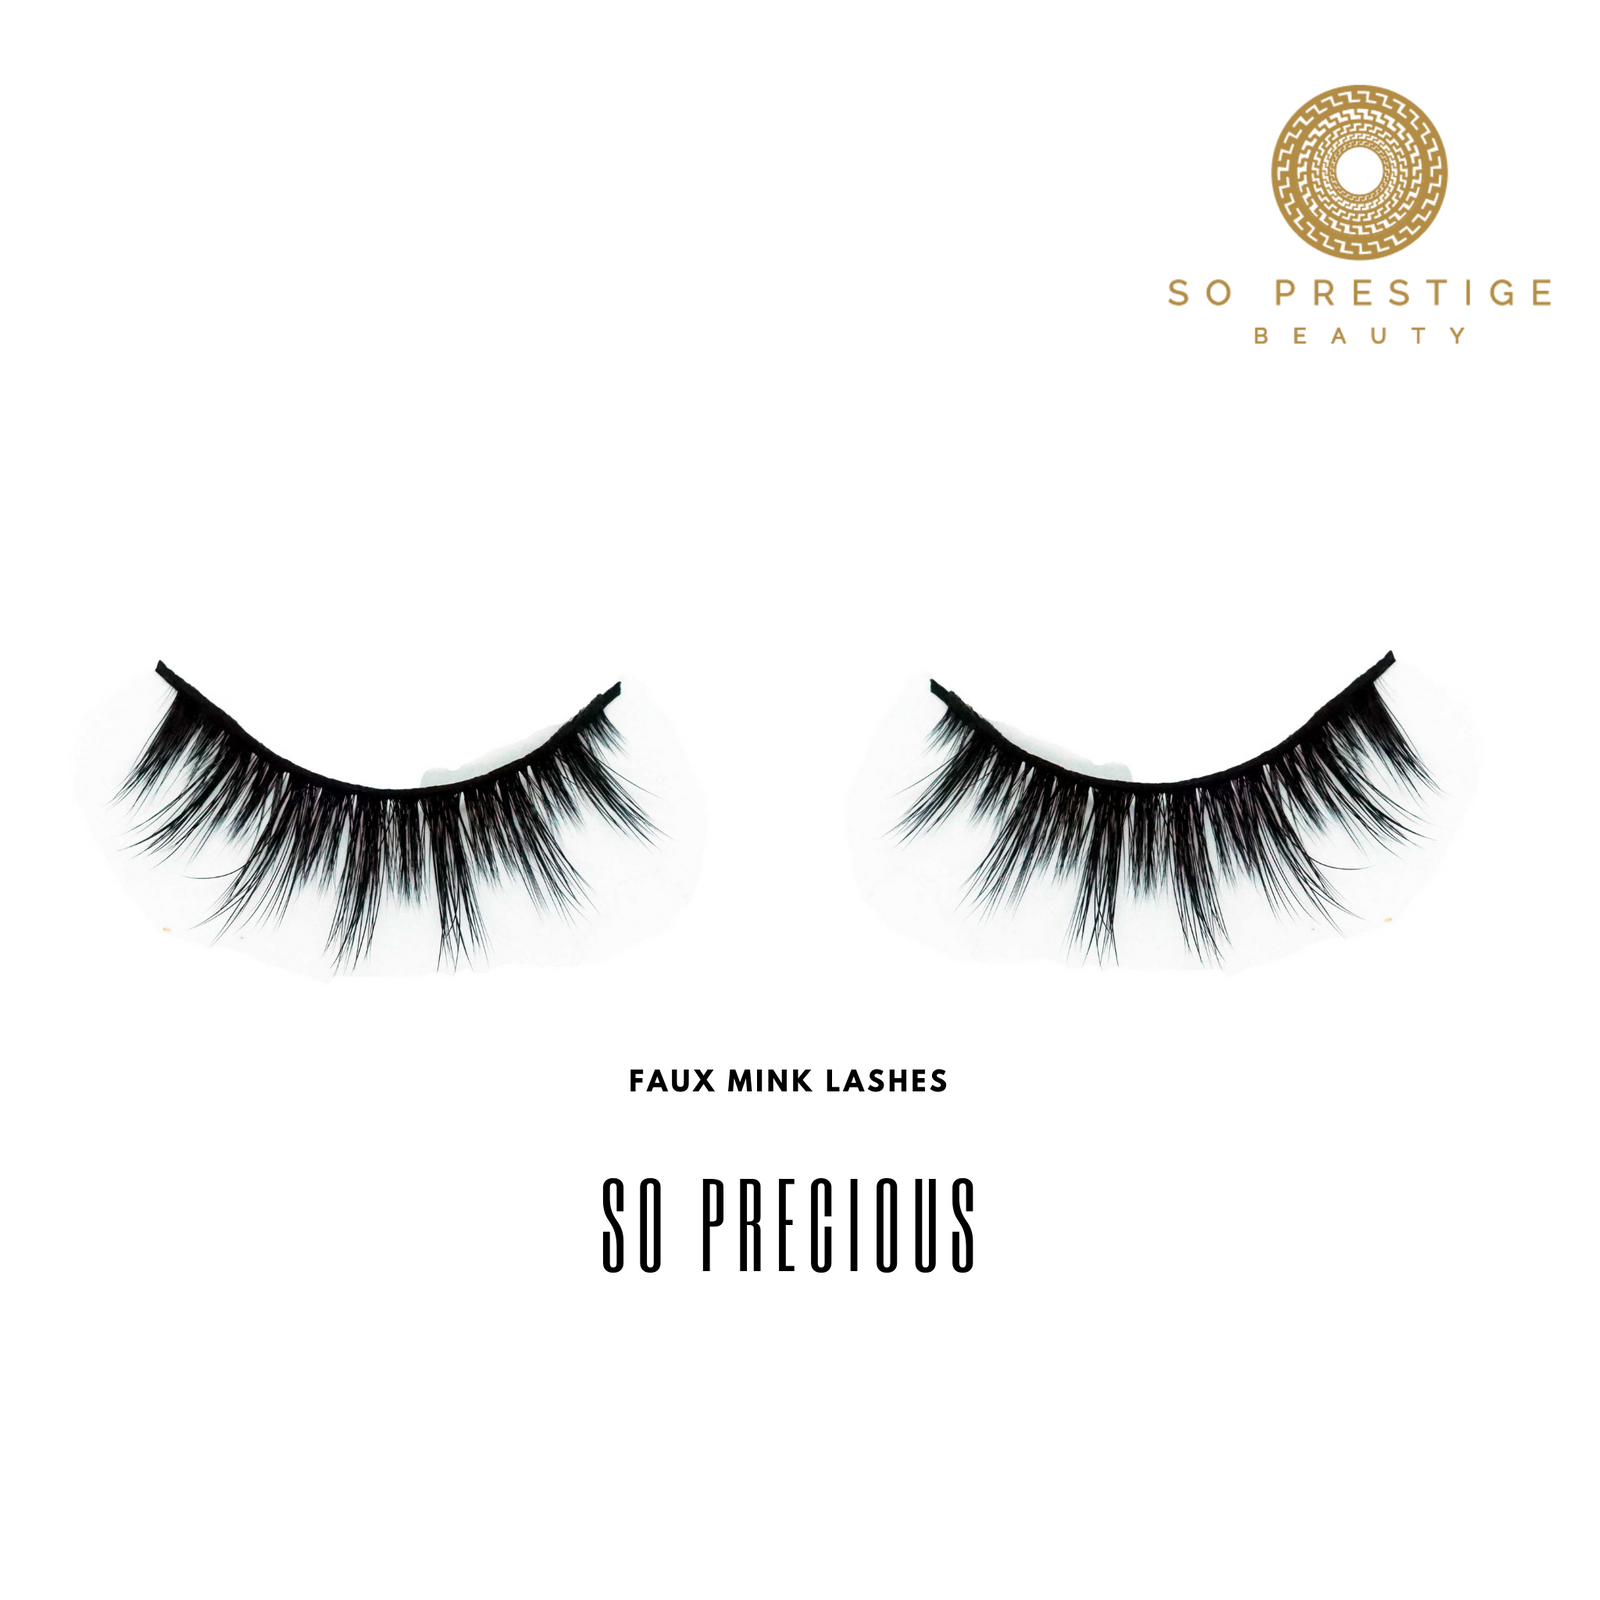 3D Faux Mink Eyelashes in the Style 'So Precious ' by So Prestige Beauty